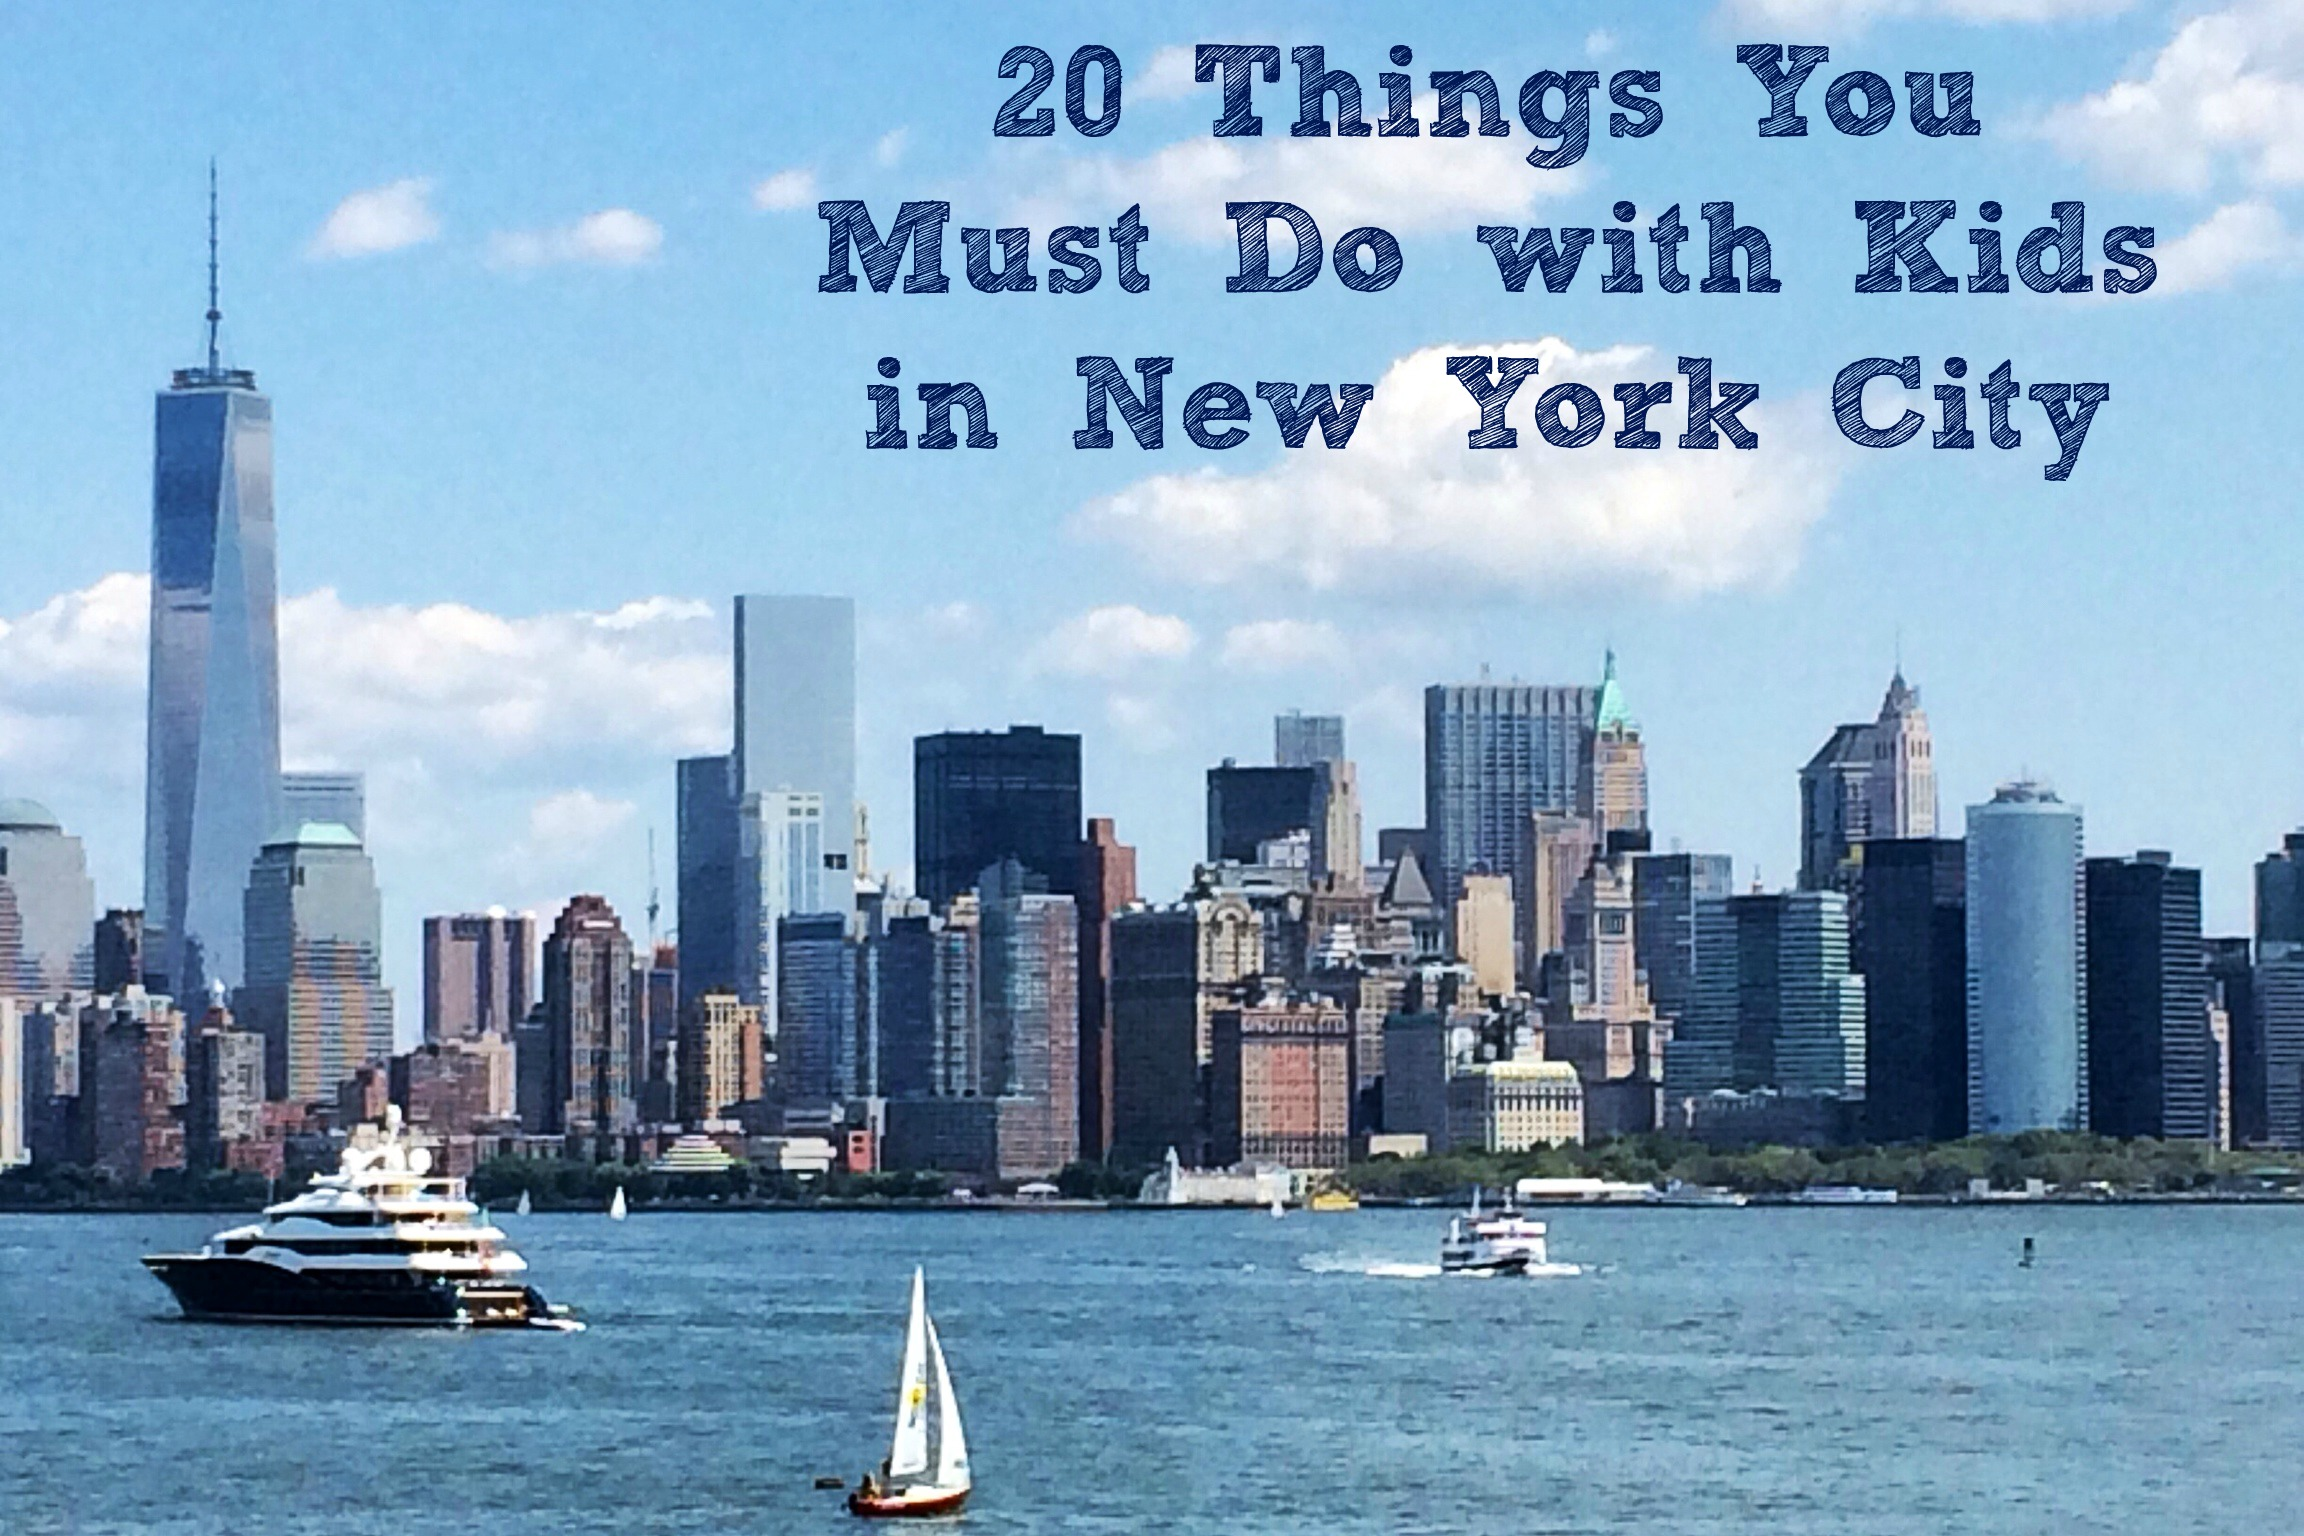 20 things you must do with kids in new york city for Attractions near new york city